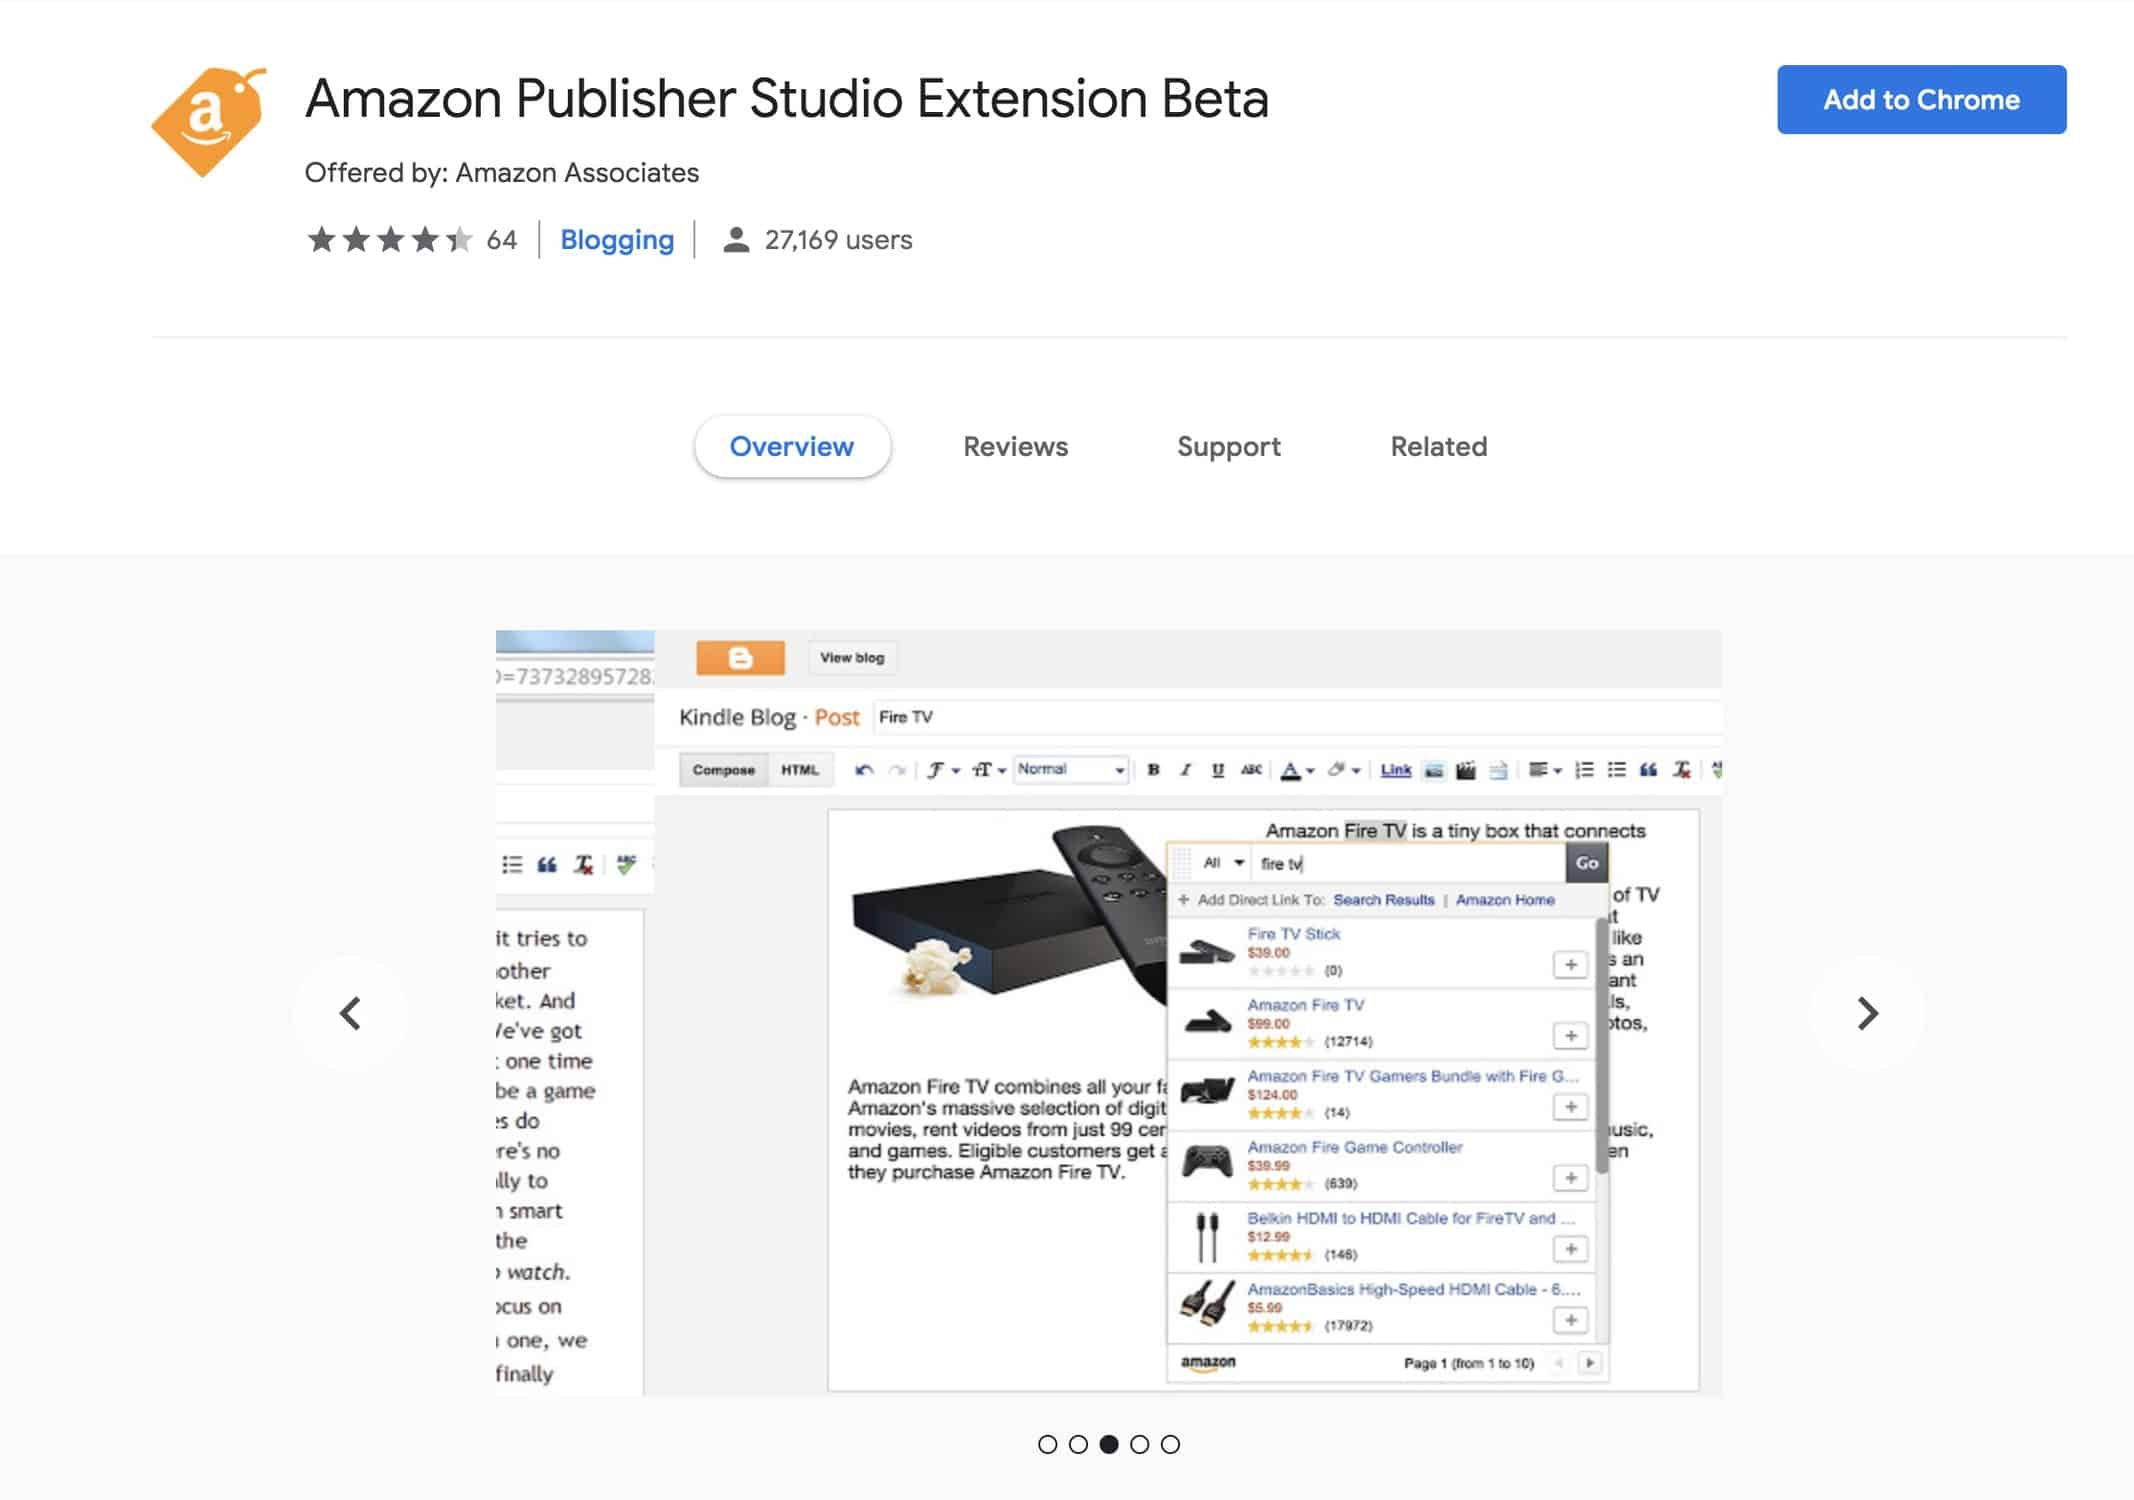 Amazon Publisher Studio Extension Beta